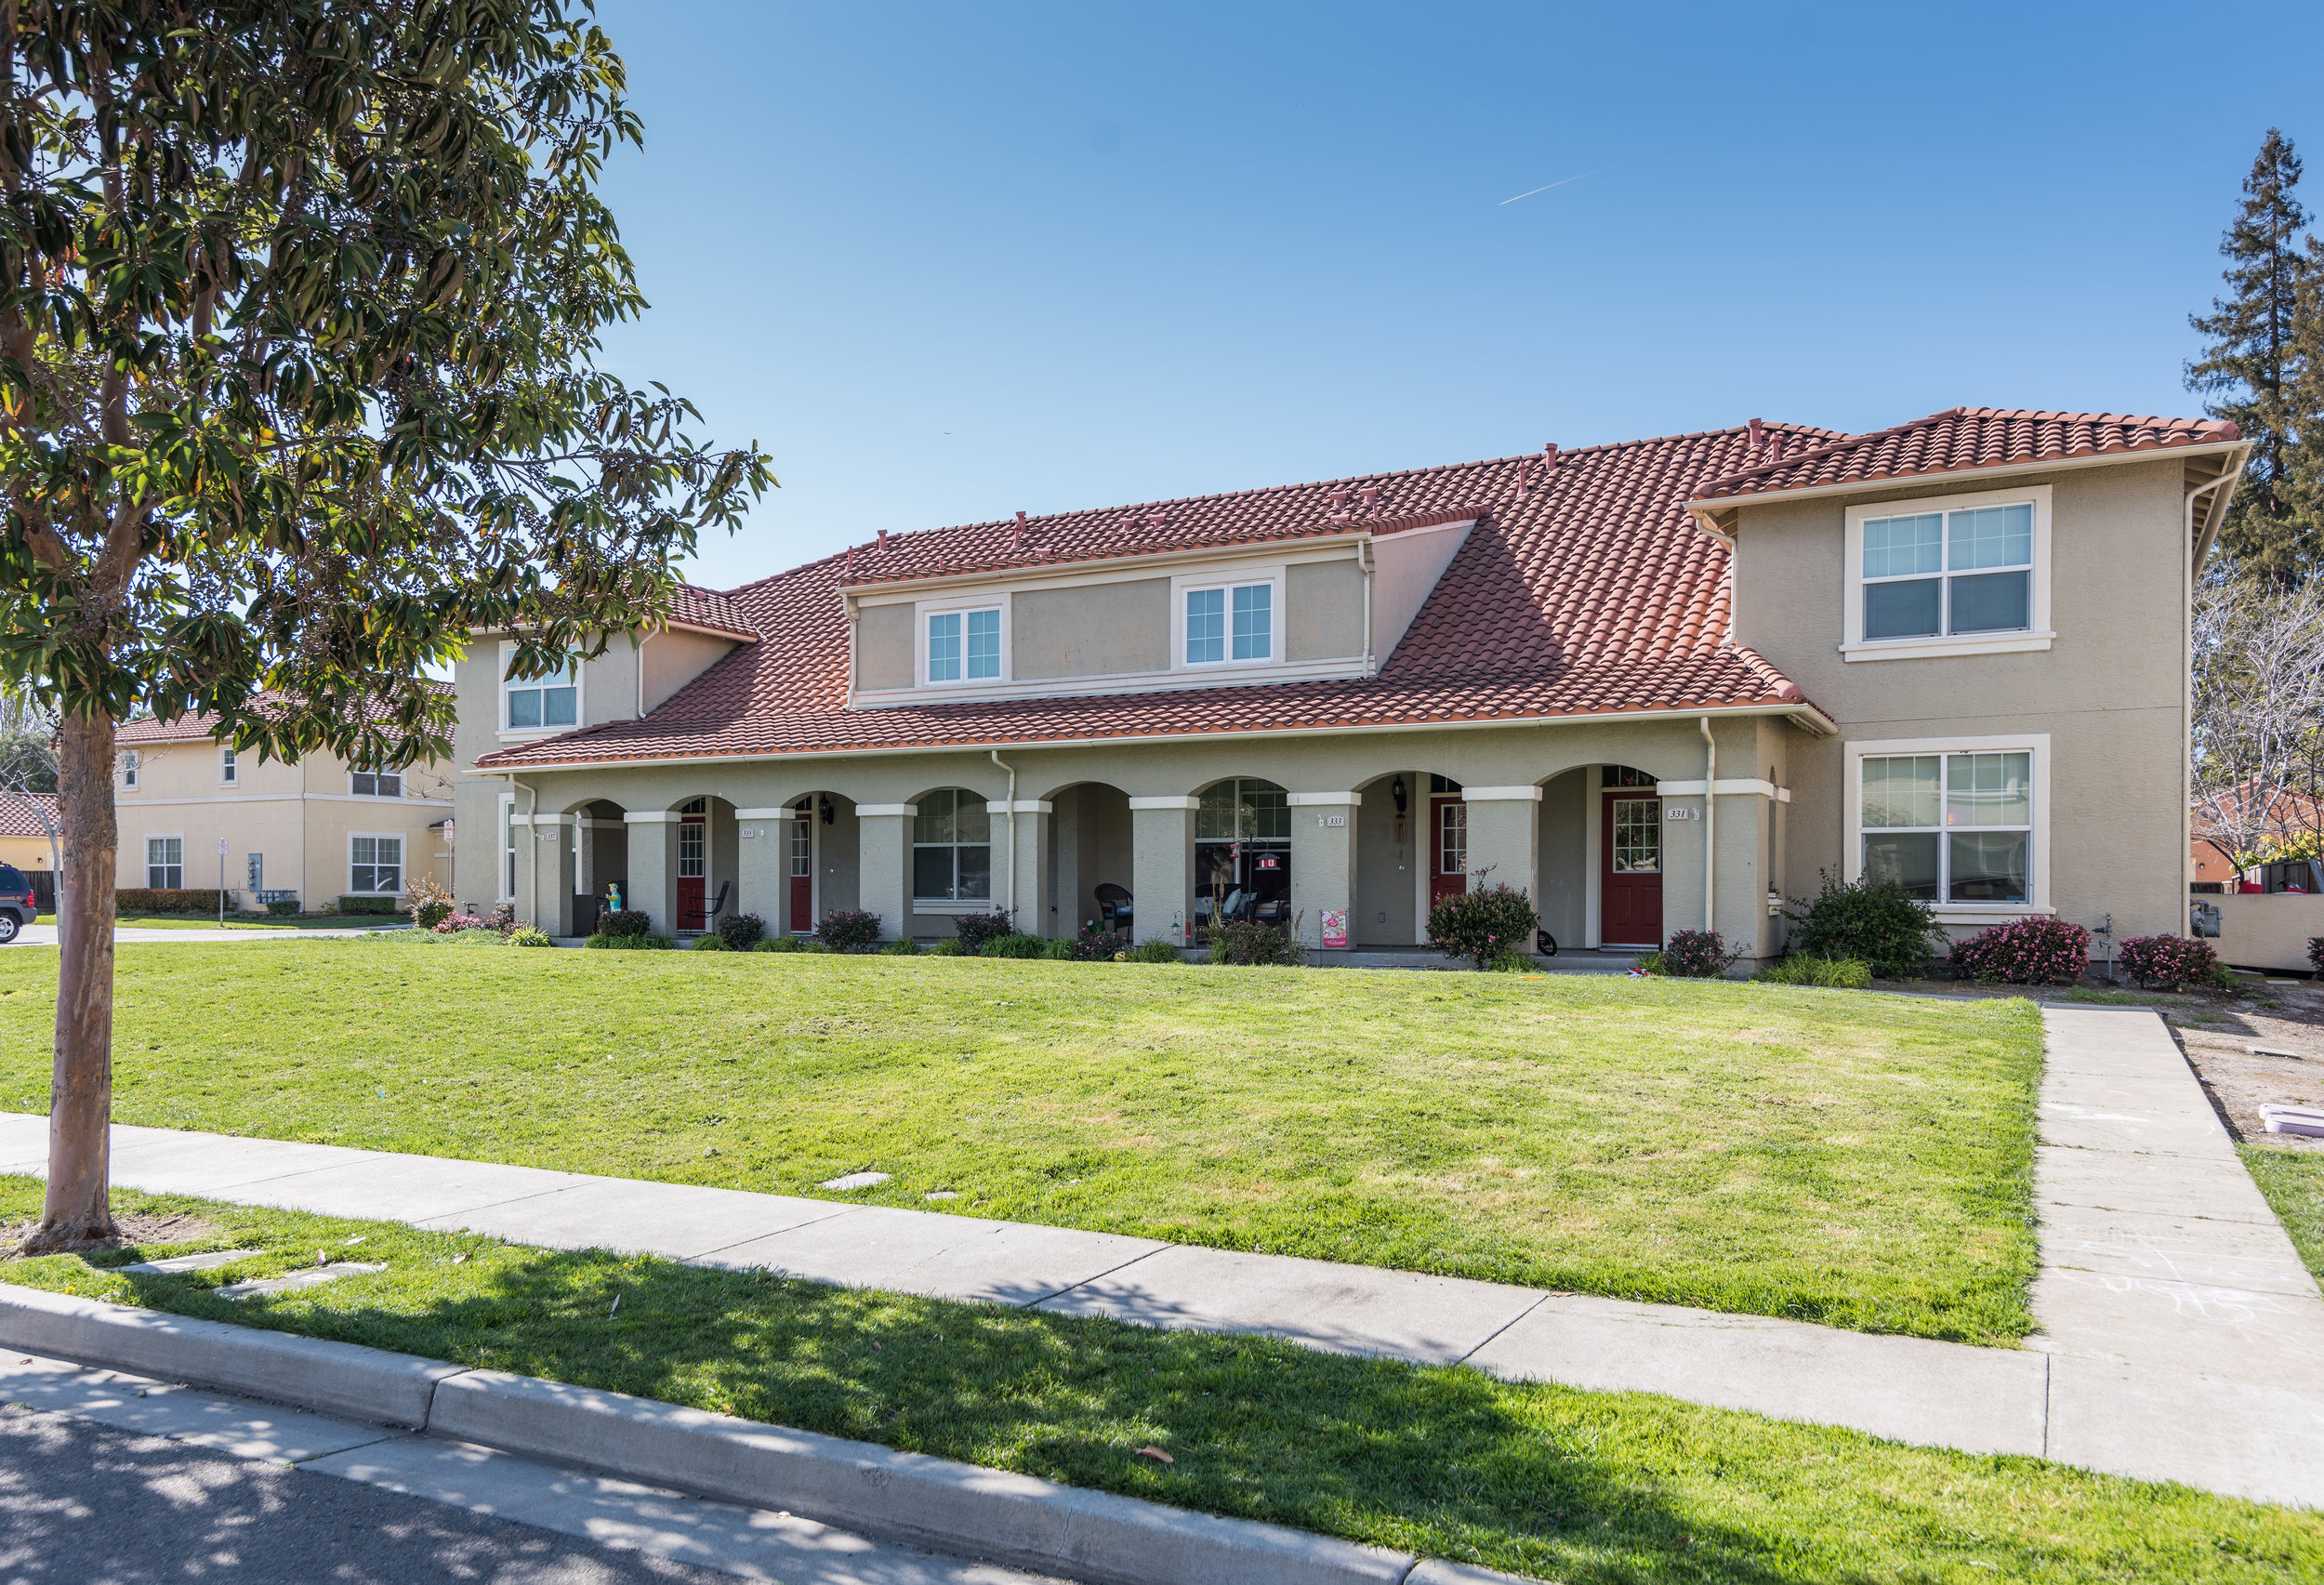 Rental Townhomes in Silicon Valley